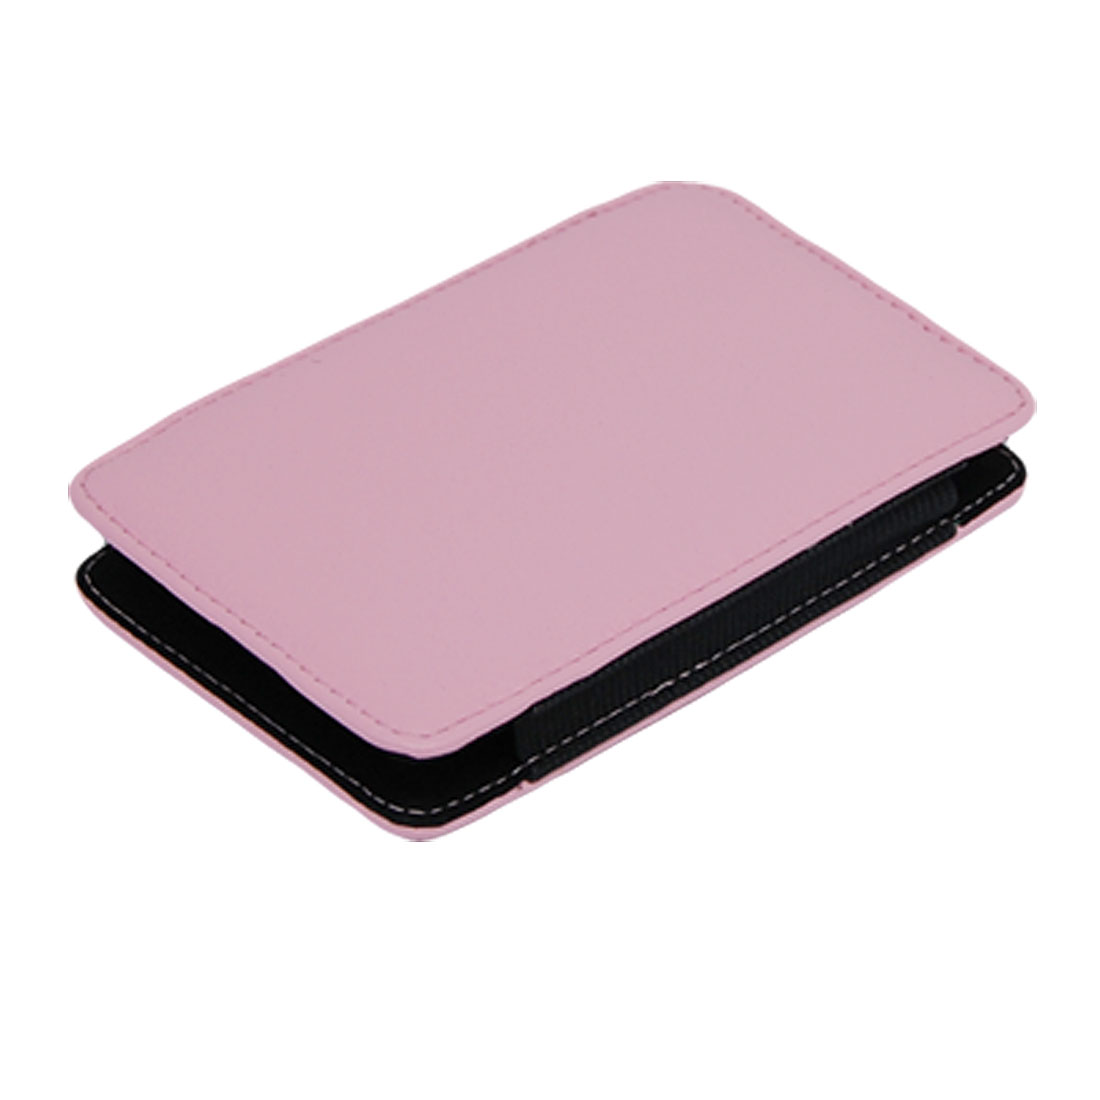 "Harddisk Protection Pink PU Leather Case Cover 2.5"" 2.5 Inches Portable HDD Box"